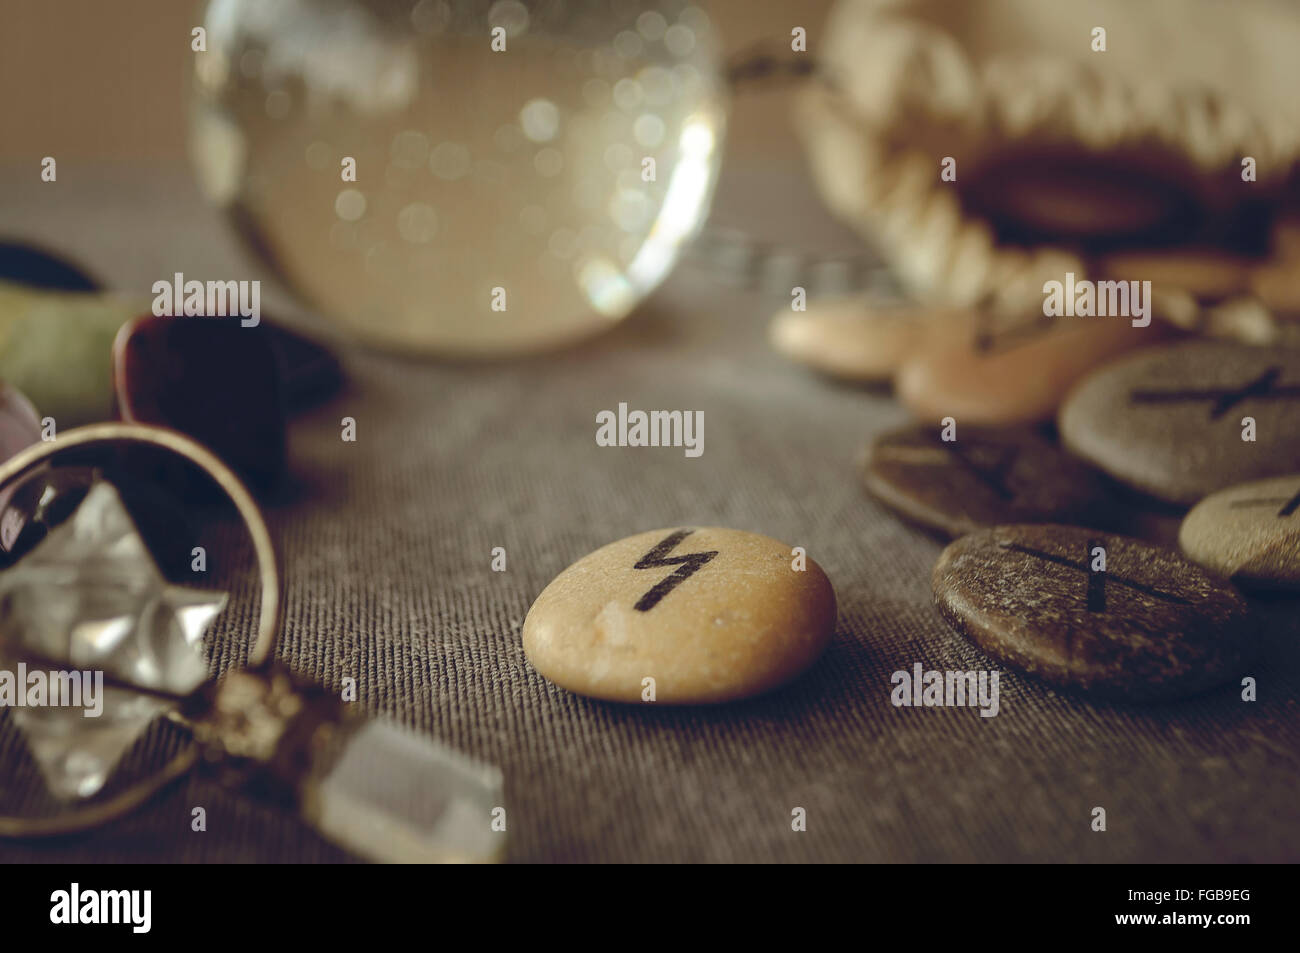 divination and prediction on runes and Tarot, mysticism or esoteric isolated on grey background - Stock Image